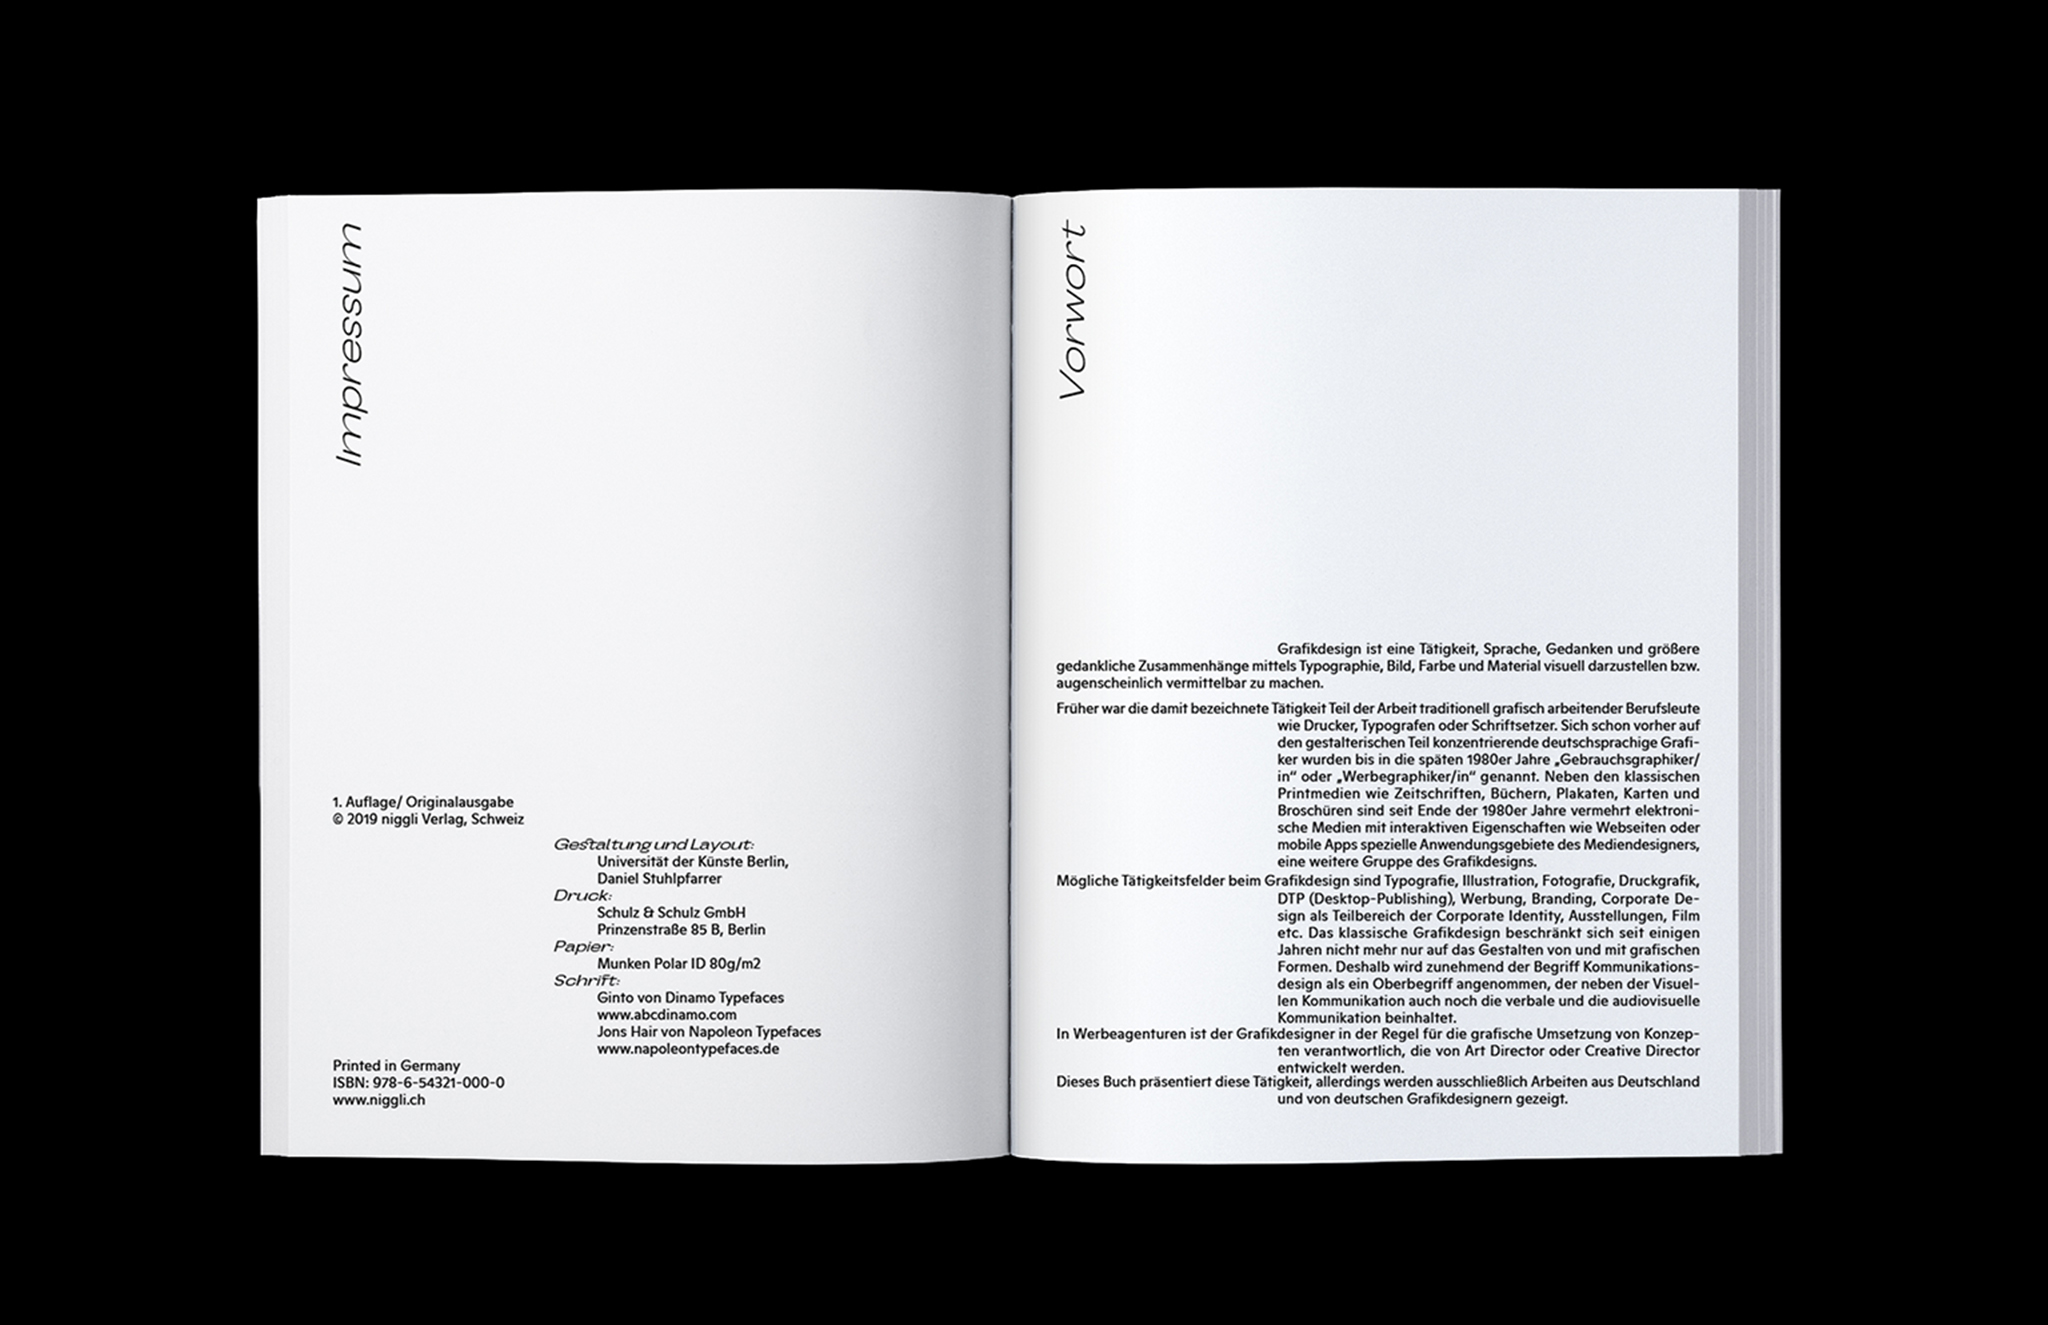 Daniel-Stuhlpfarrer_Visual-Communication_Graphic-Design_Deutsches-Grafikdesign_Book_5_Imprint-Preface